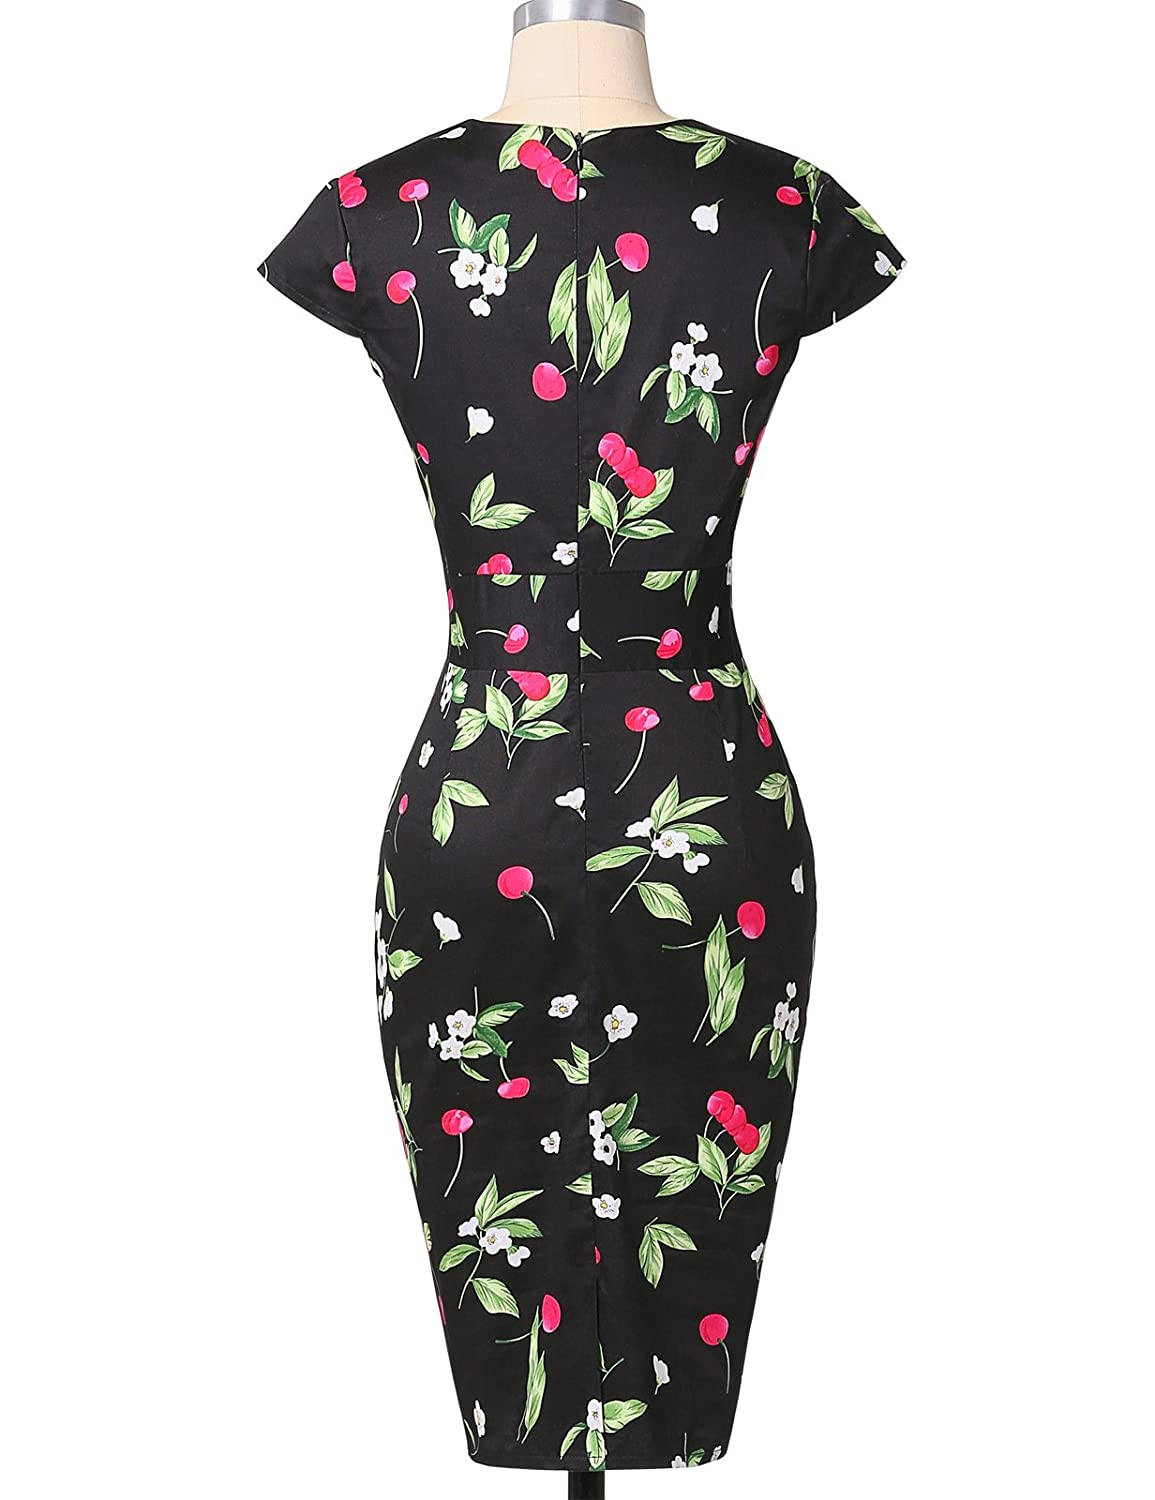 Belle Poque Retro Dress Grace Karin® mujeres vintage Bodycon para cóctel vestidos Cap Sleeve cl7597 Floral-5(CL7597) XXX-Large: Amazon.es: Ropa y accesorios